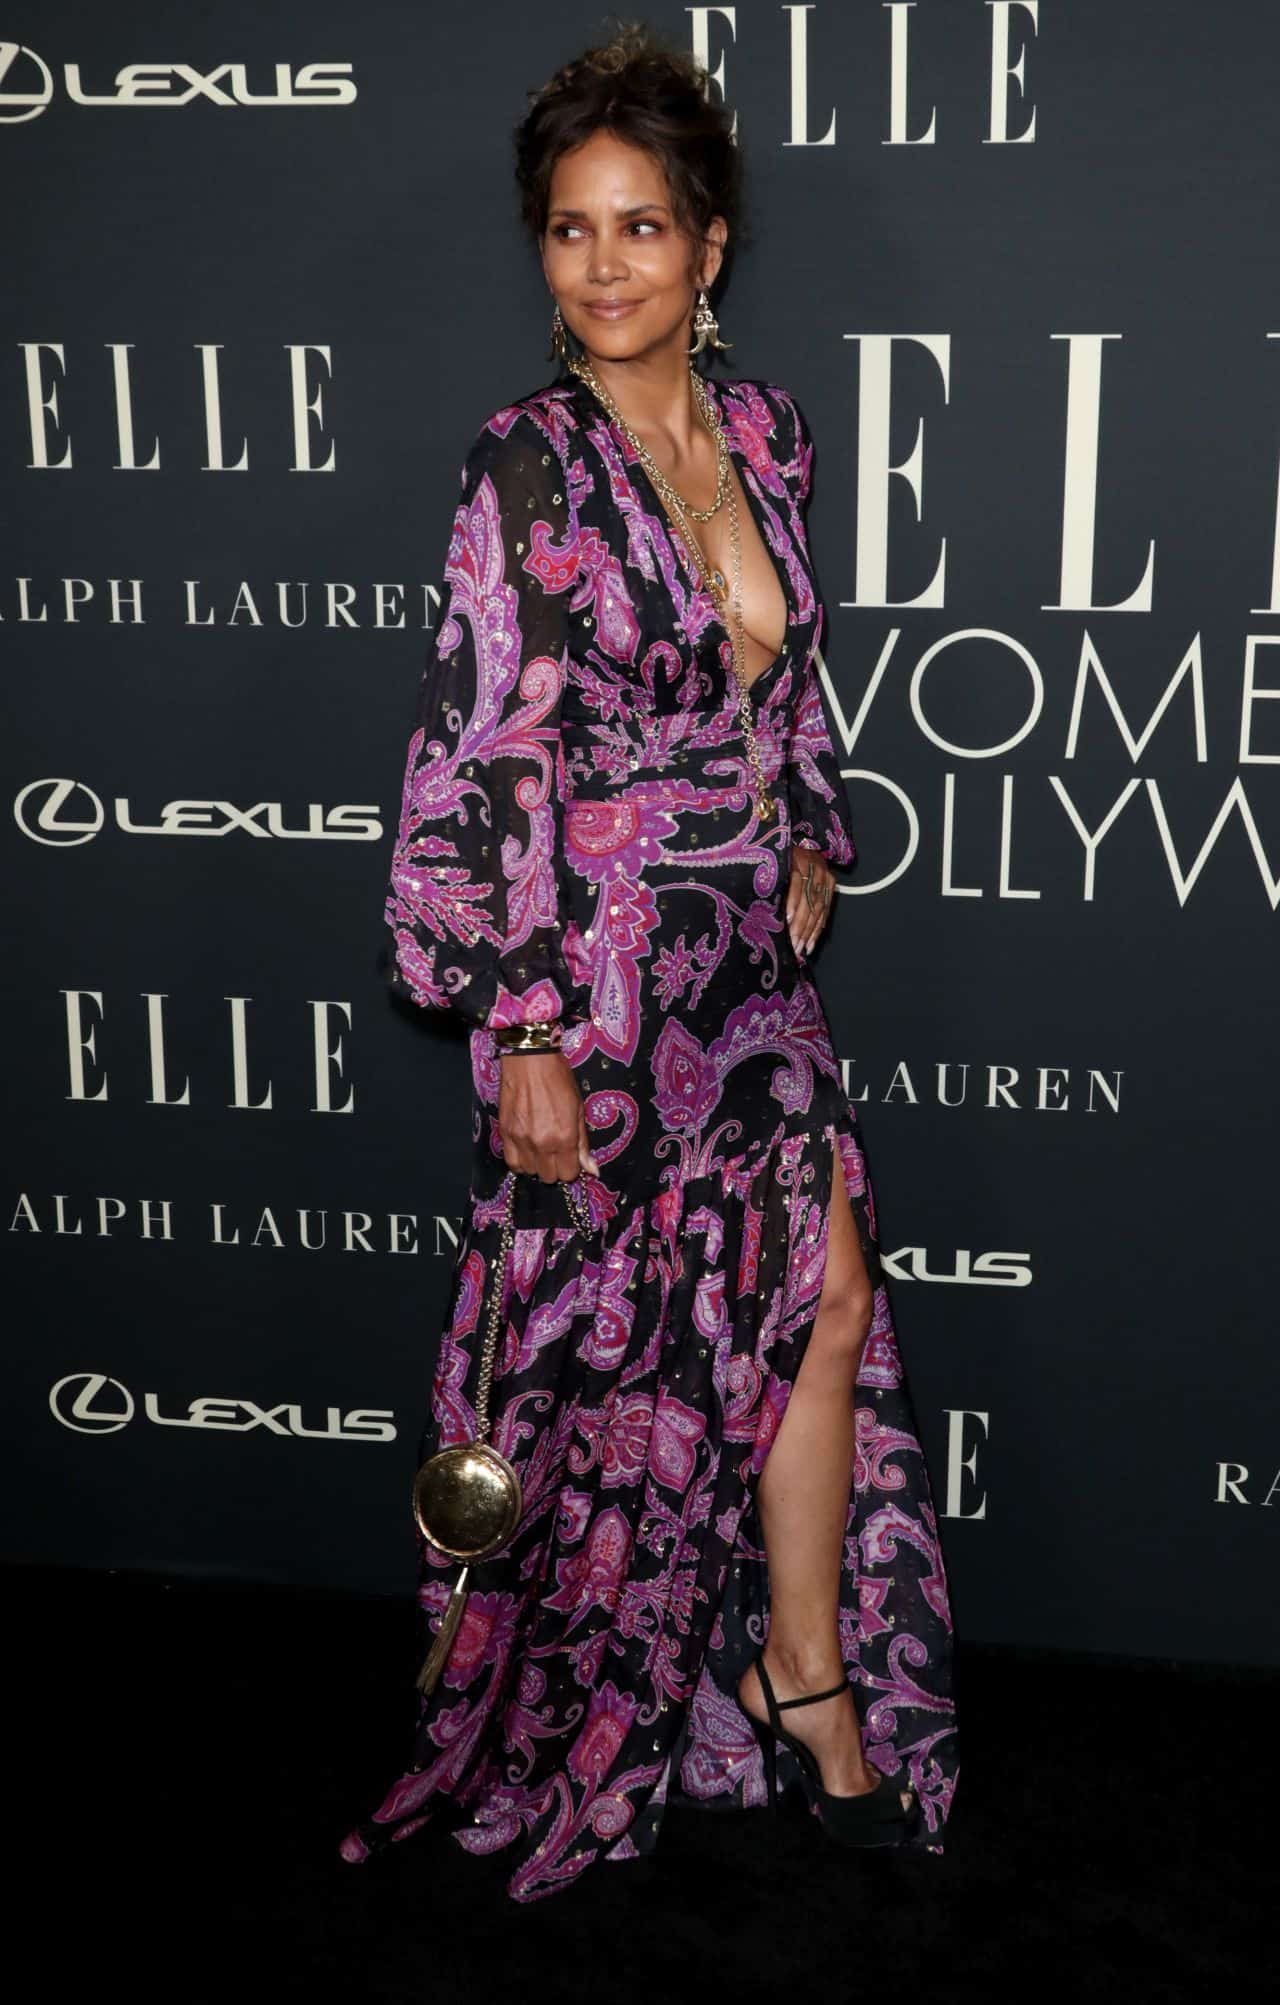 Halle Berry in an Elegant Floral Dress at Elle's Women In Hollywood 2021